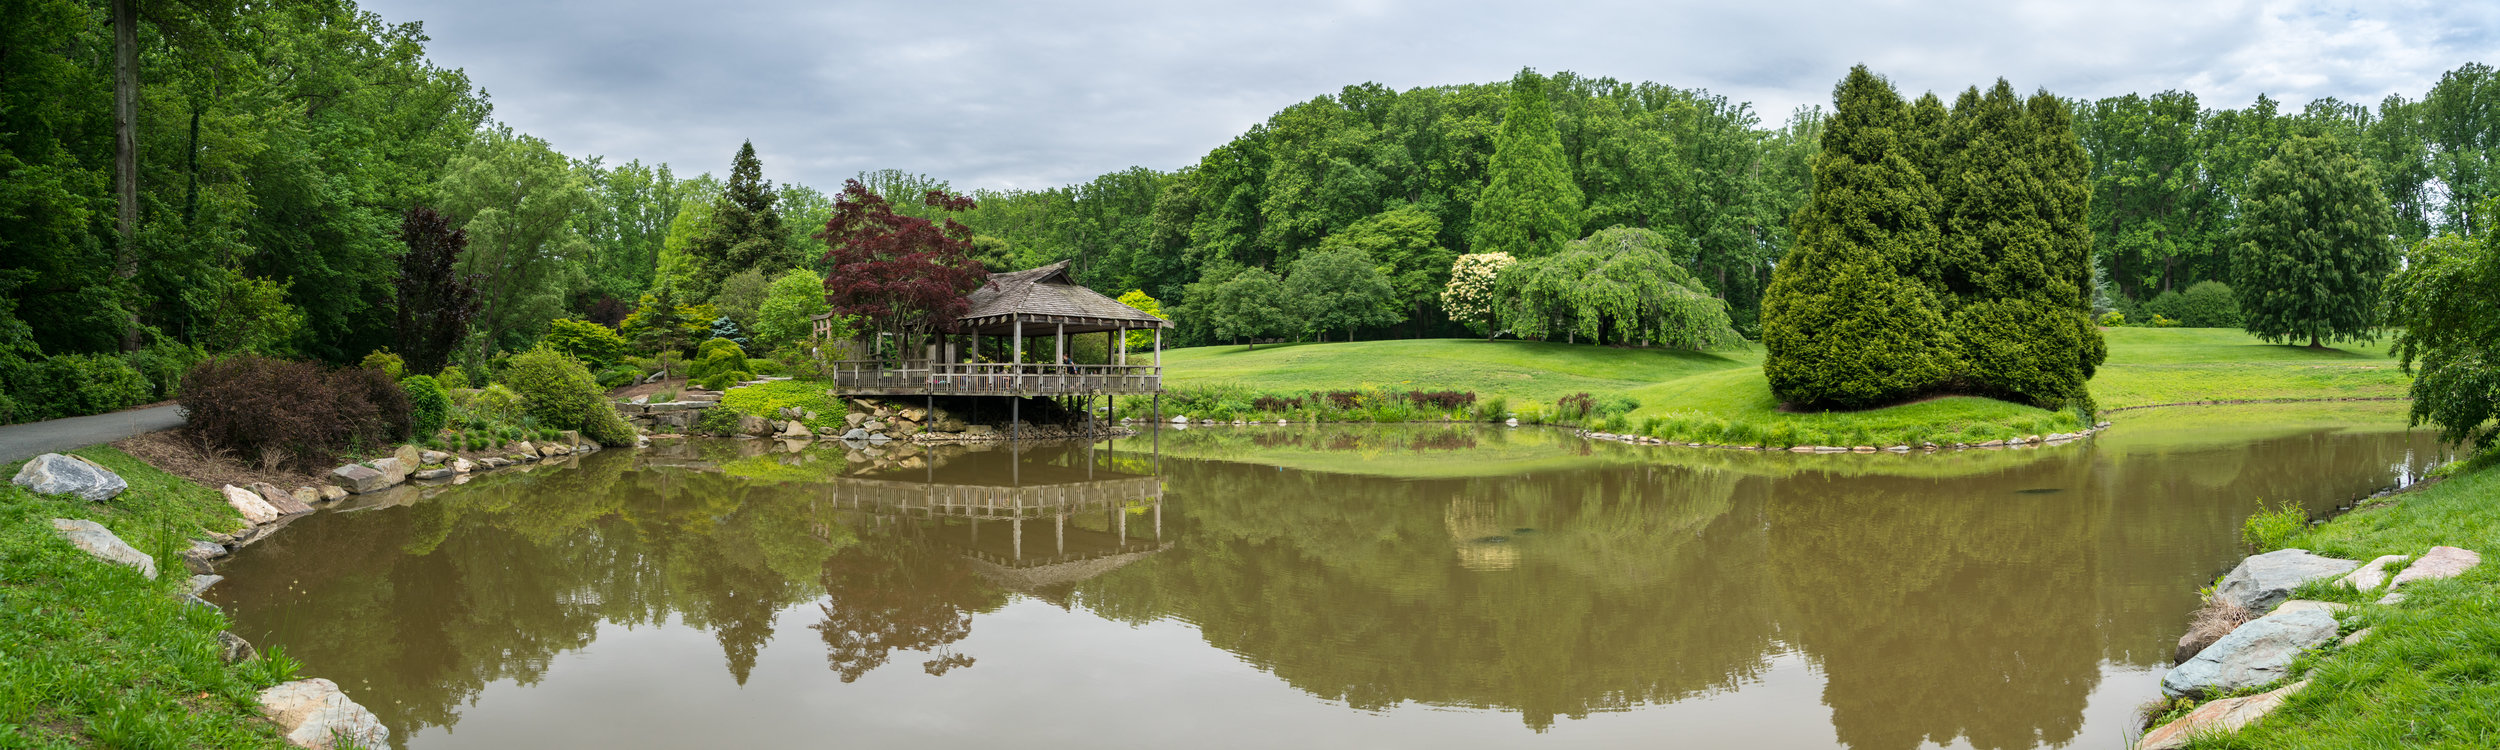 Brookside Gardens - always hope for a better sky but the view was still great